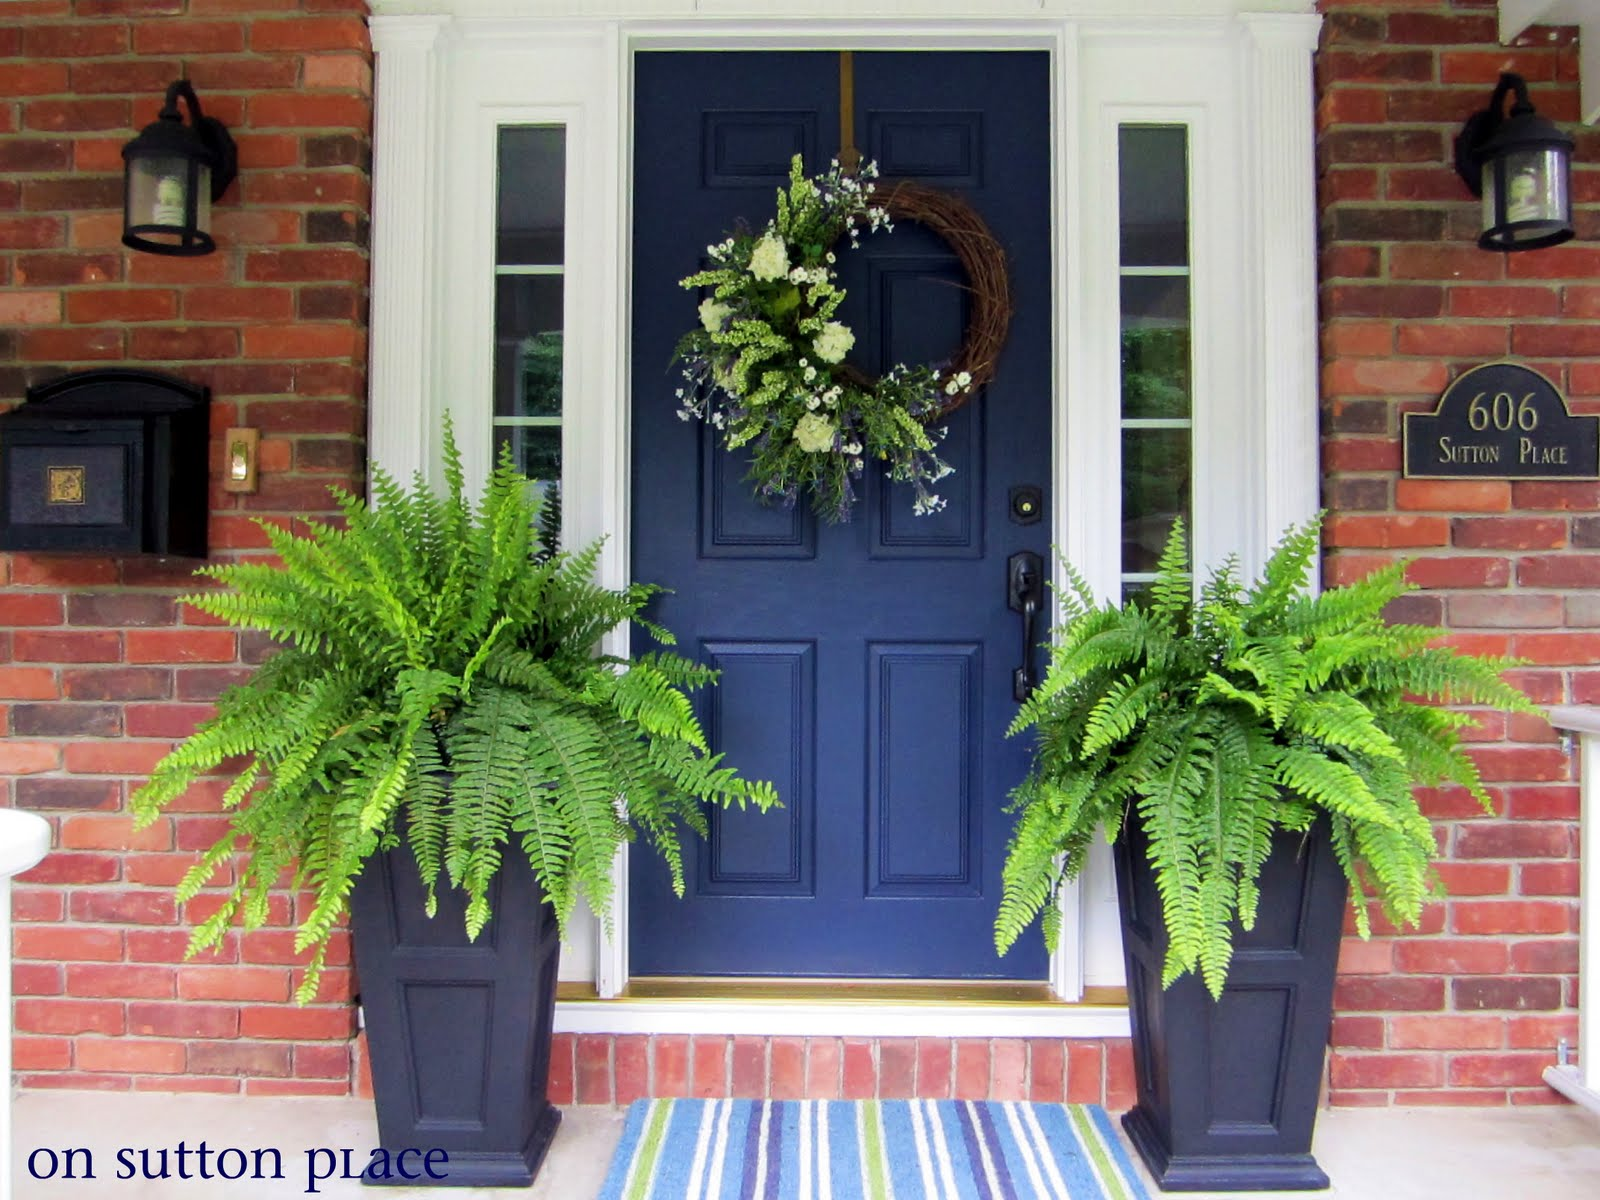 My new blue front door on sutton place Front door color ideas for brick house